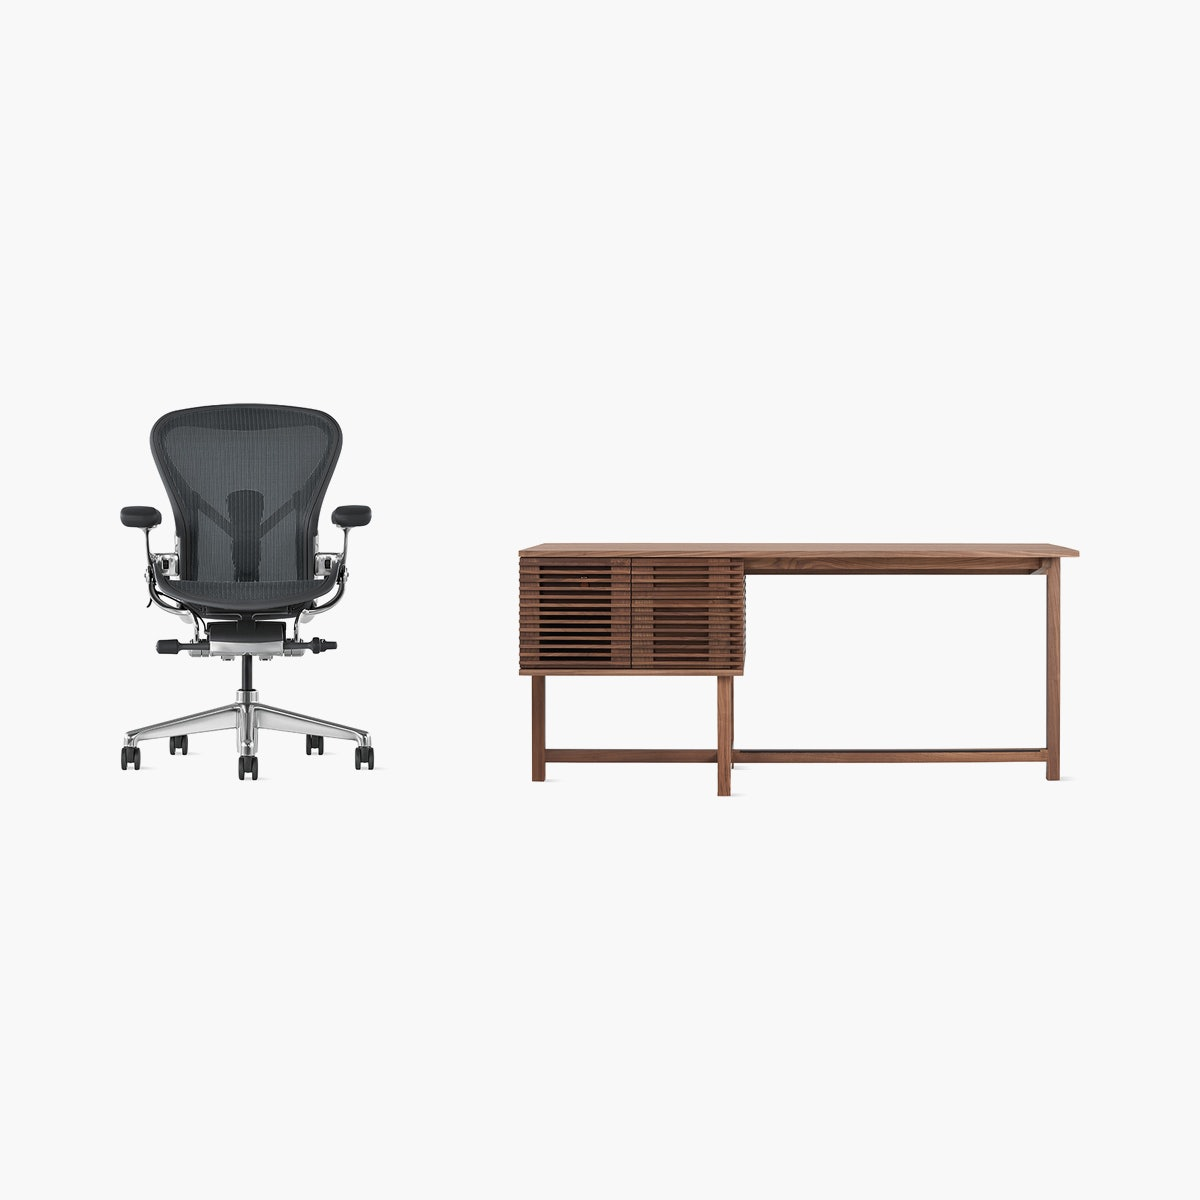 Aeron Chair / Line Storage Desk Office Bundle